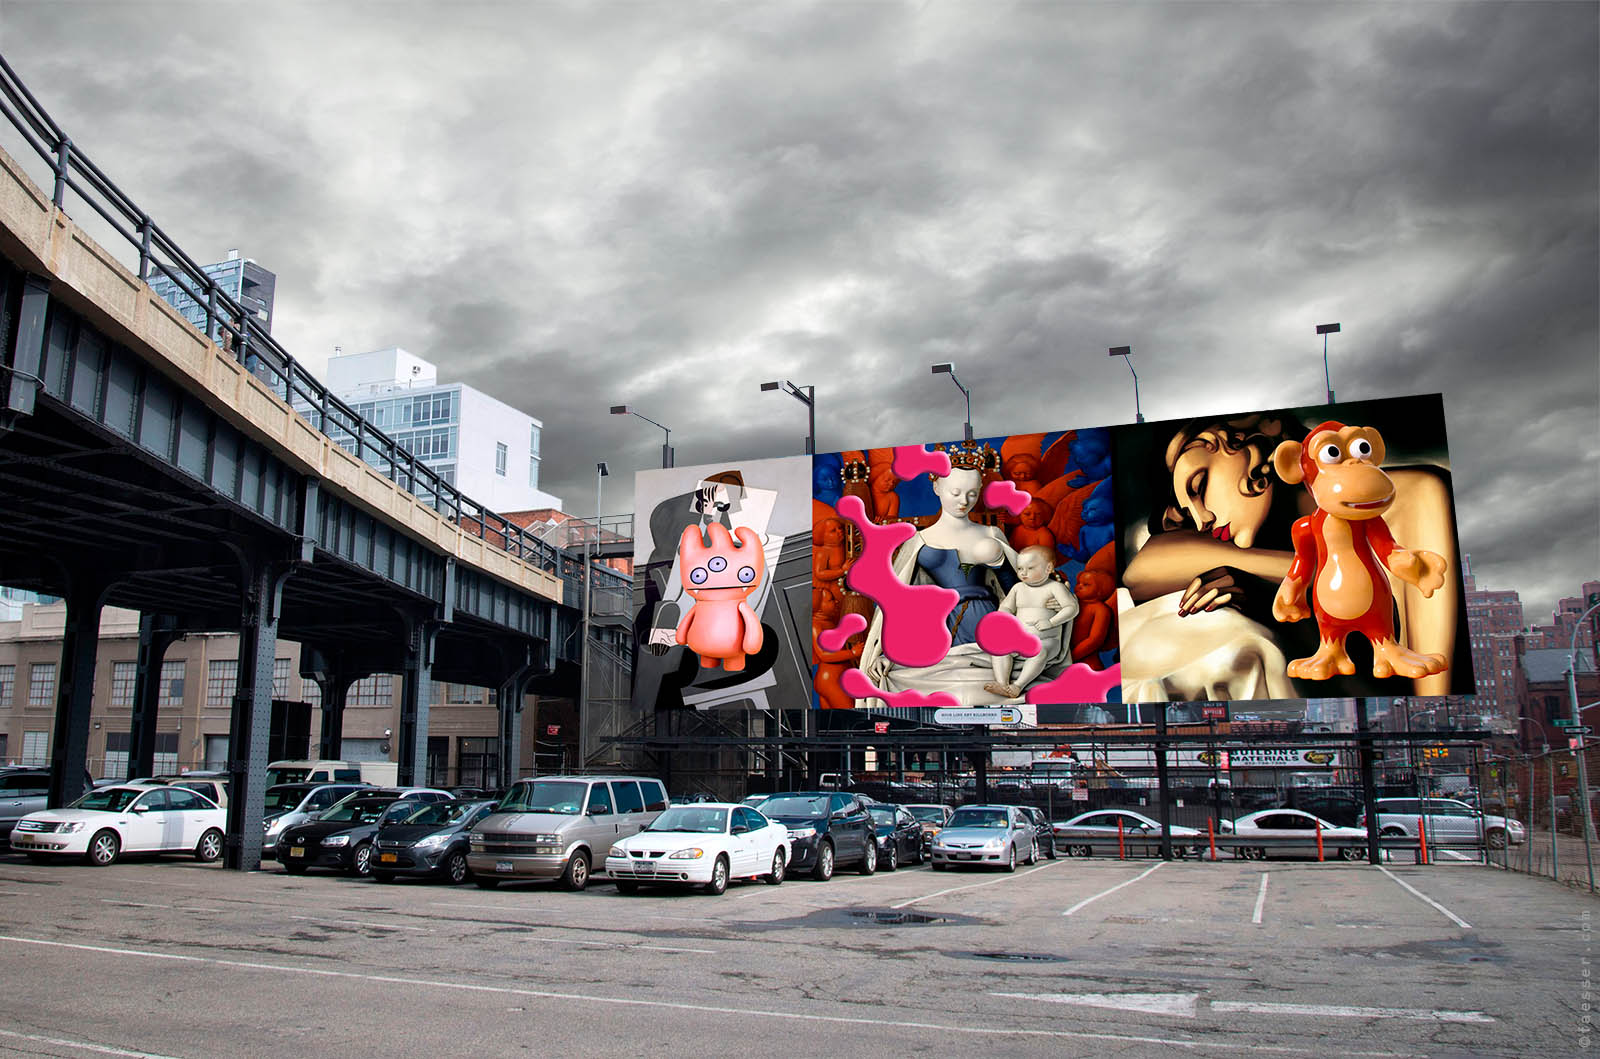 Masters triplets for the High Line Billboard in Chelsea, NYC; artist Roland Faesser, sculptor and painter 2017